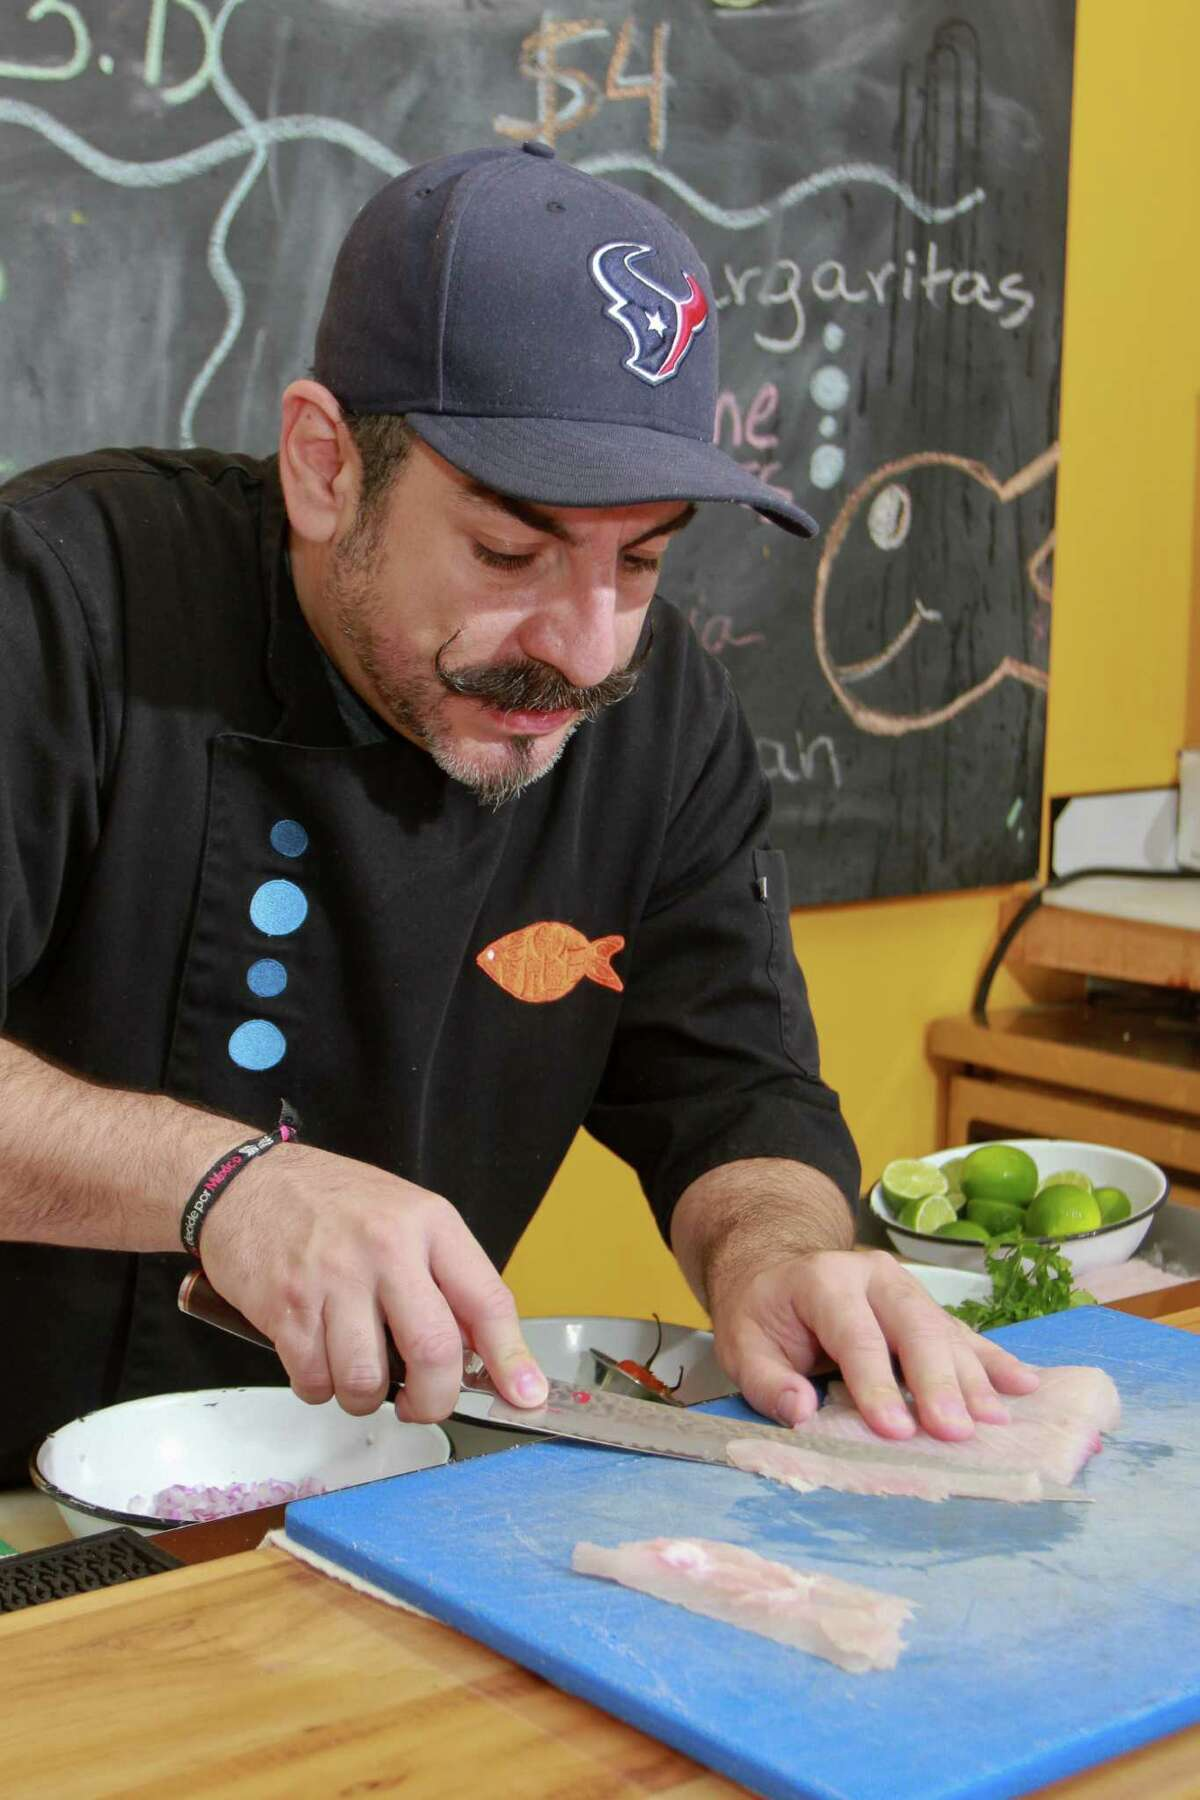 Chef Aquiles Chavez of La Fisheria restaurant, conducts a class on making ceviche.